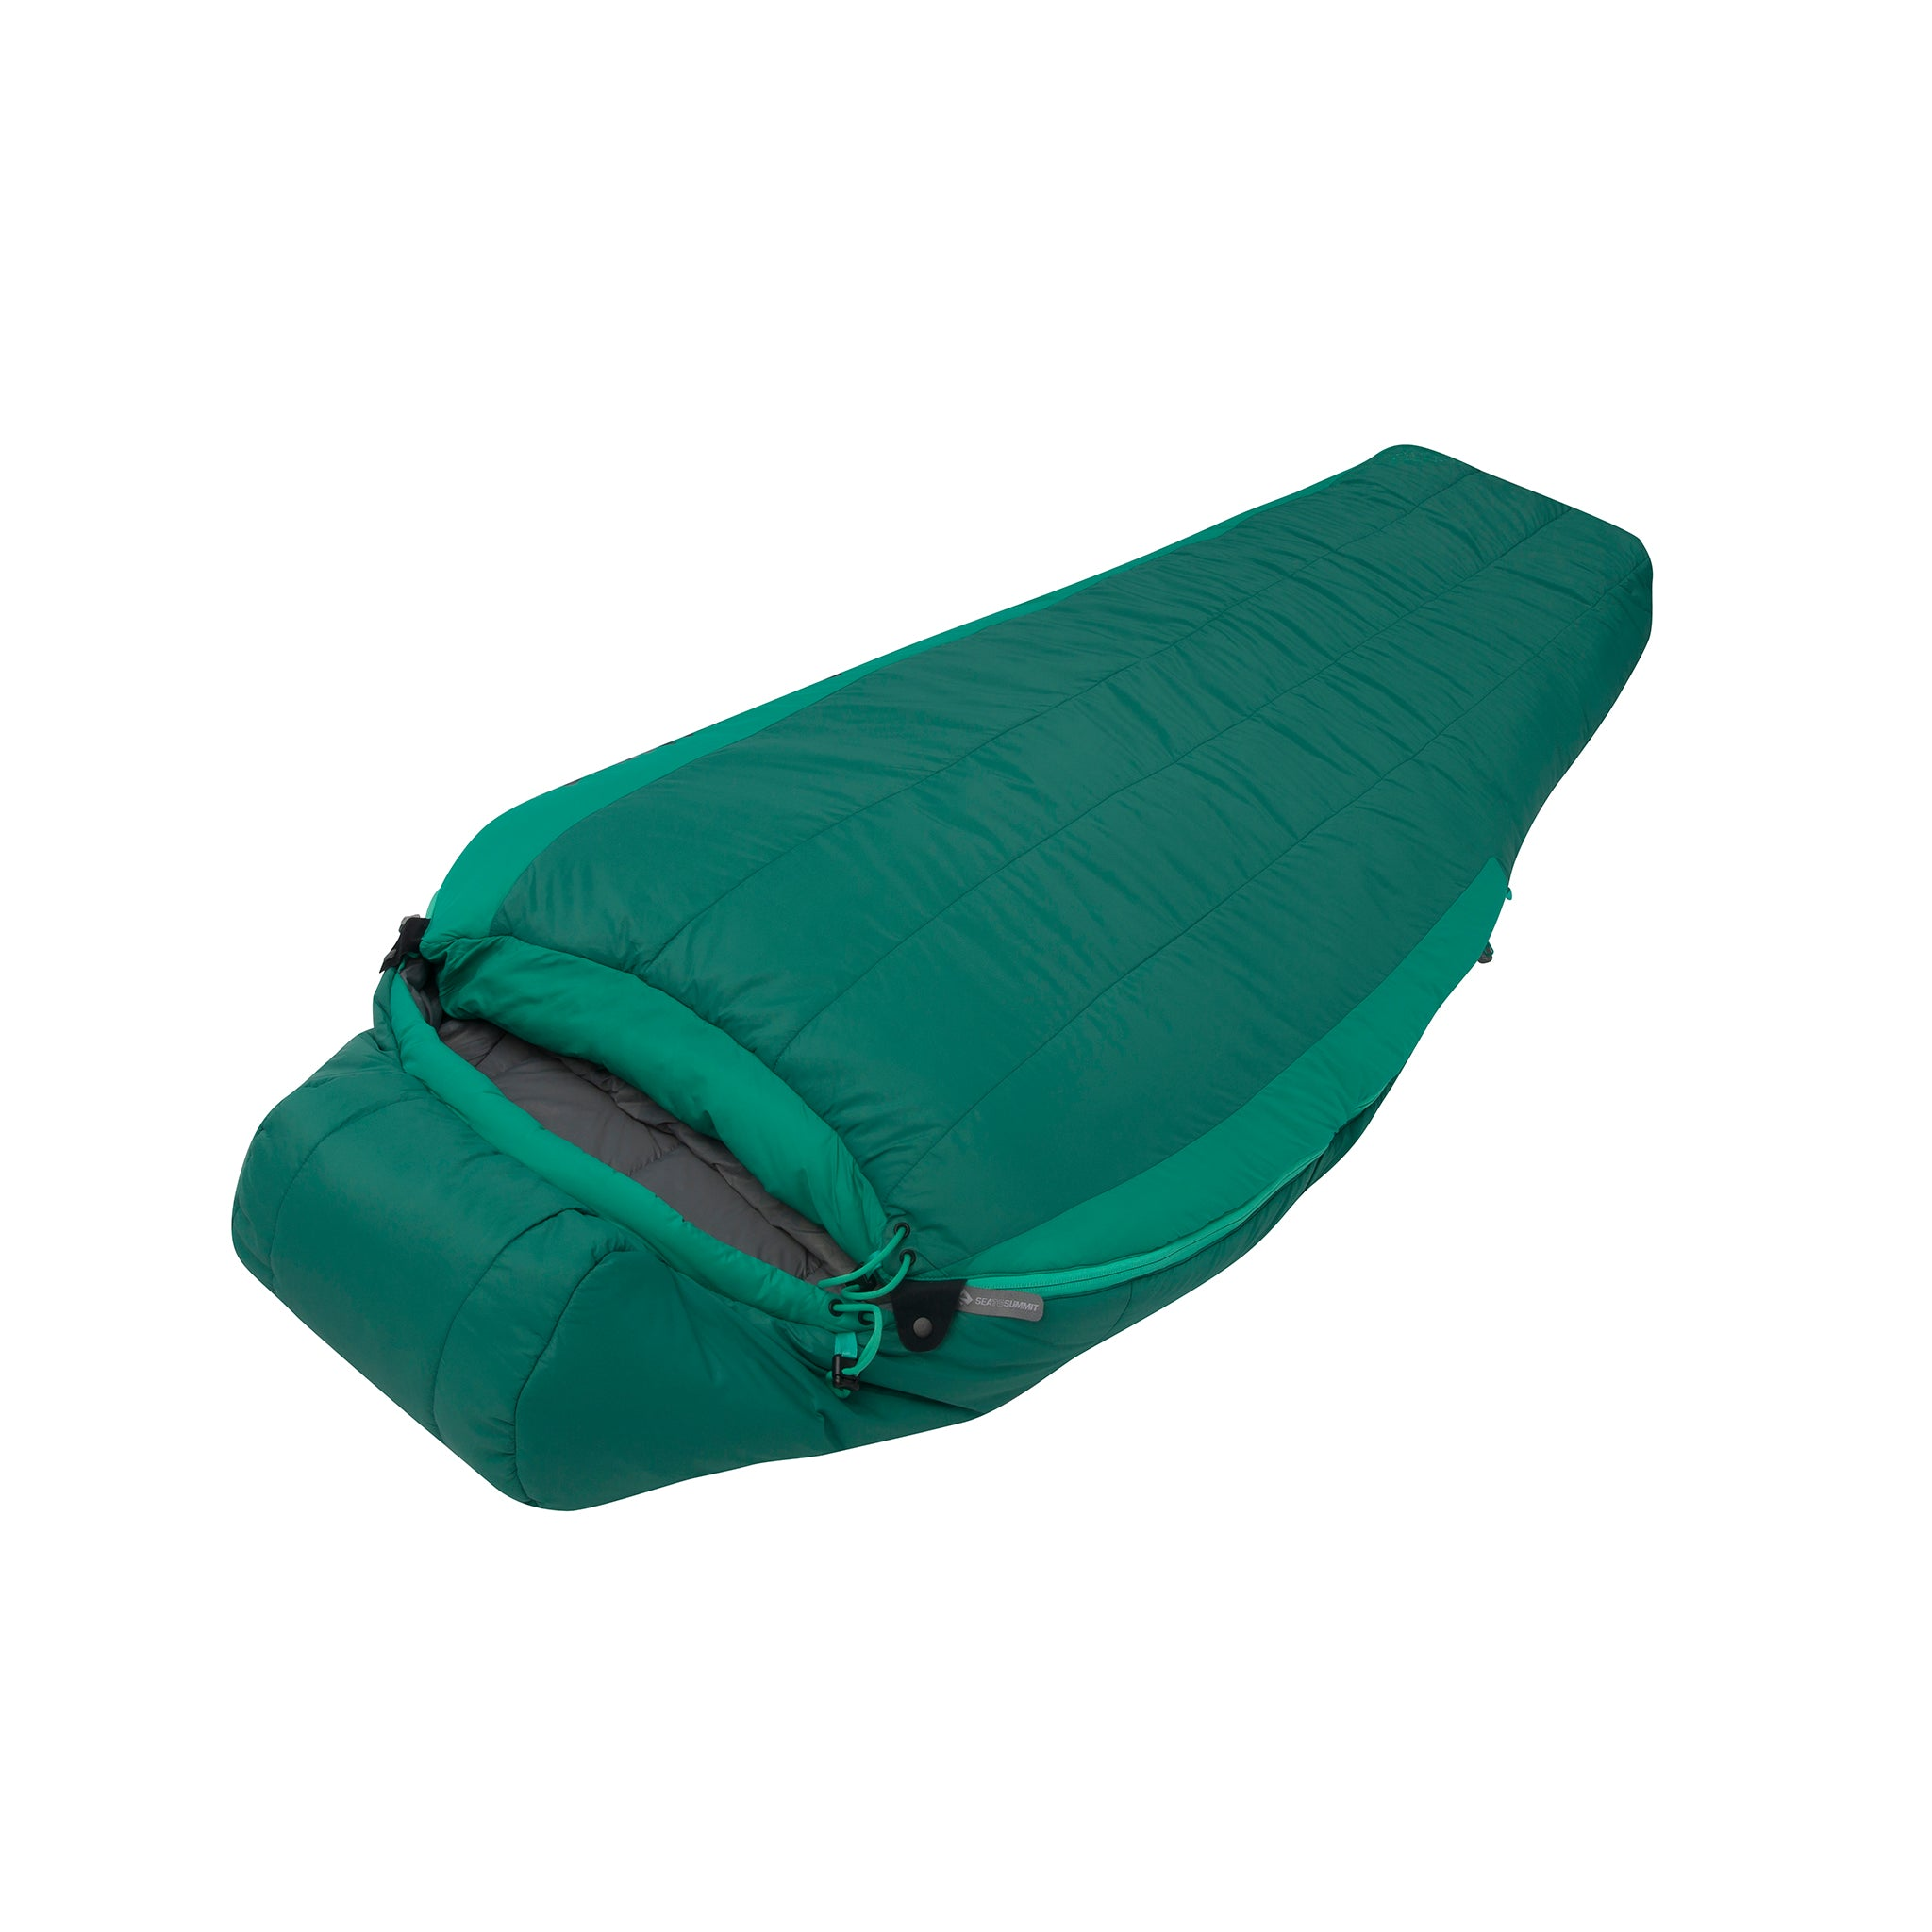 Traverse Synthetic Sleeping Bag (25°F & 15°F)